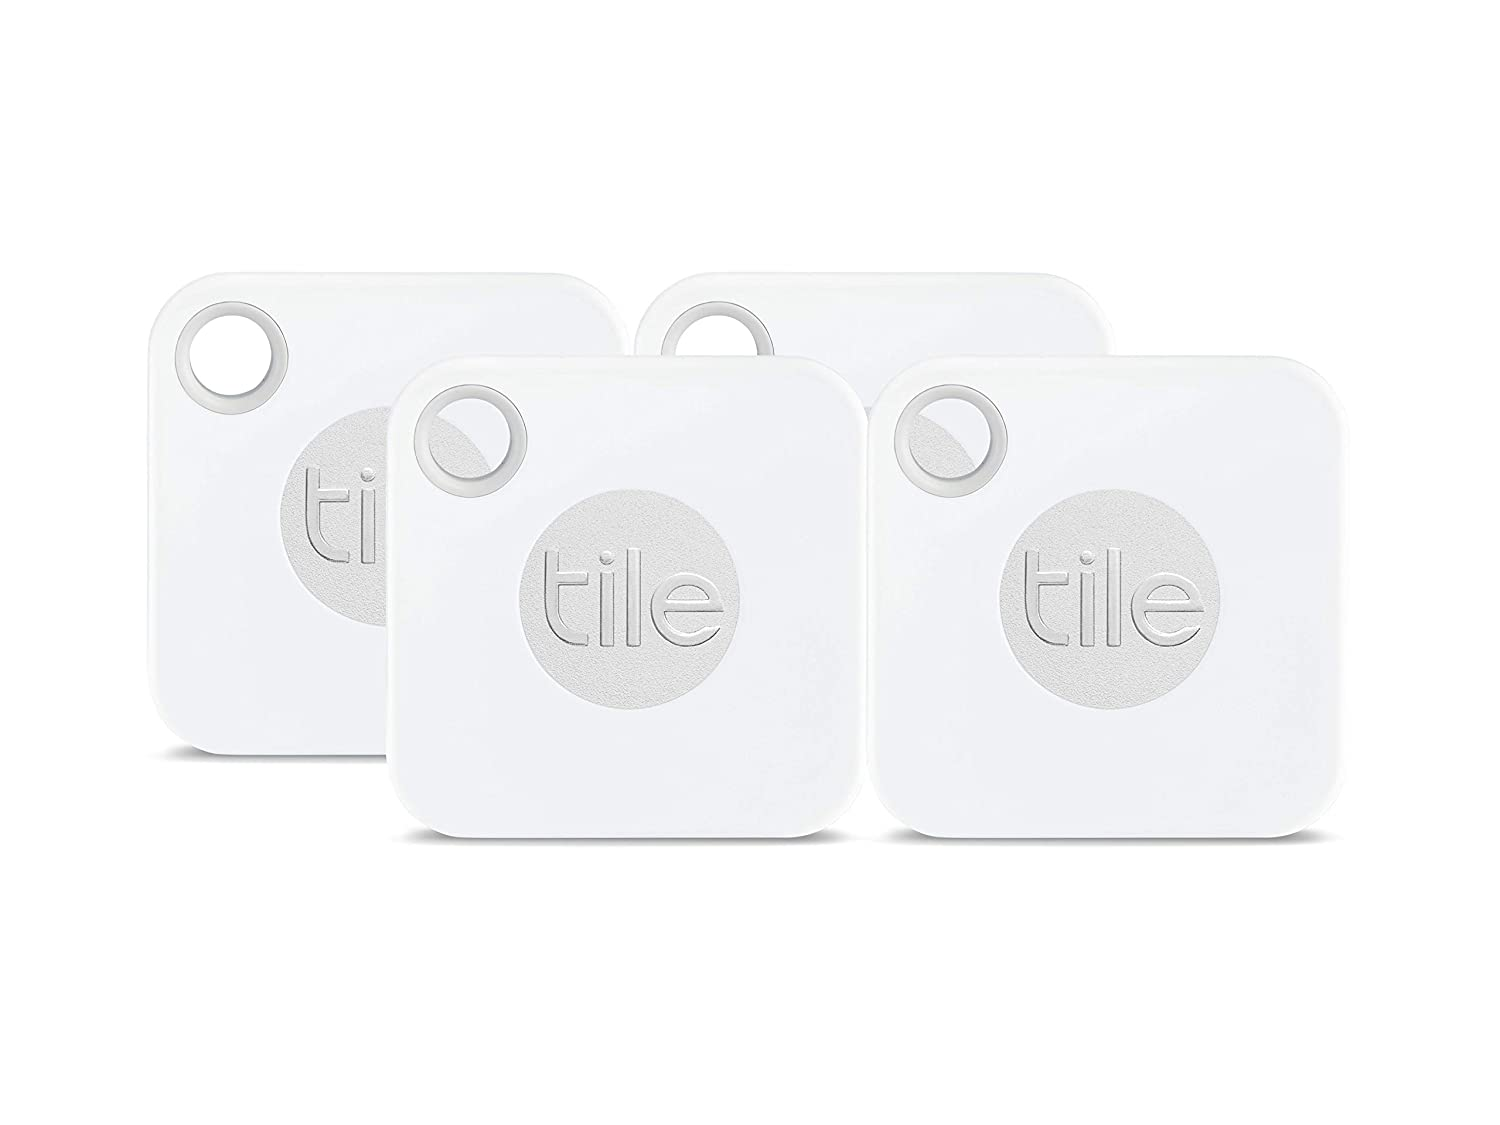 Tile Mate with Replaceable Battery - 4 pack